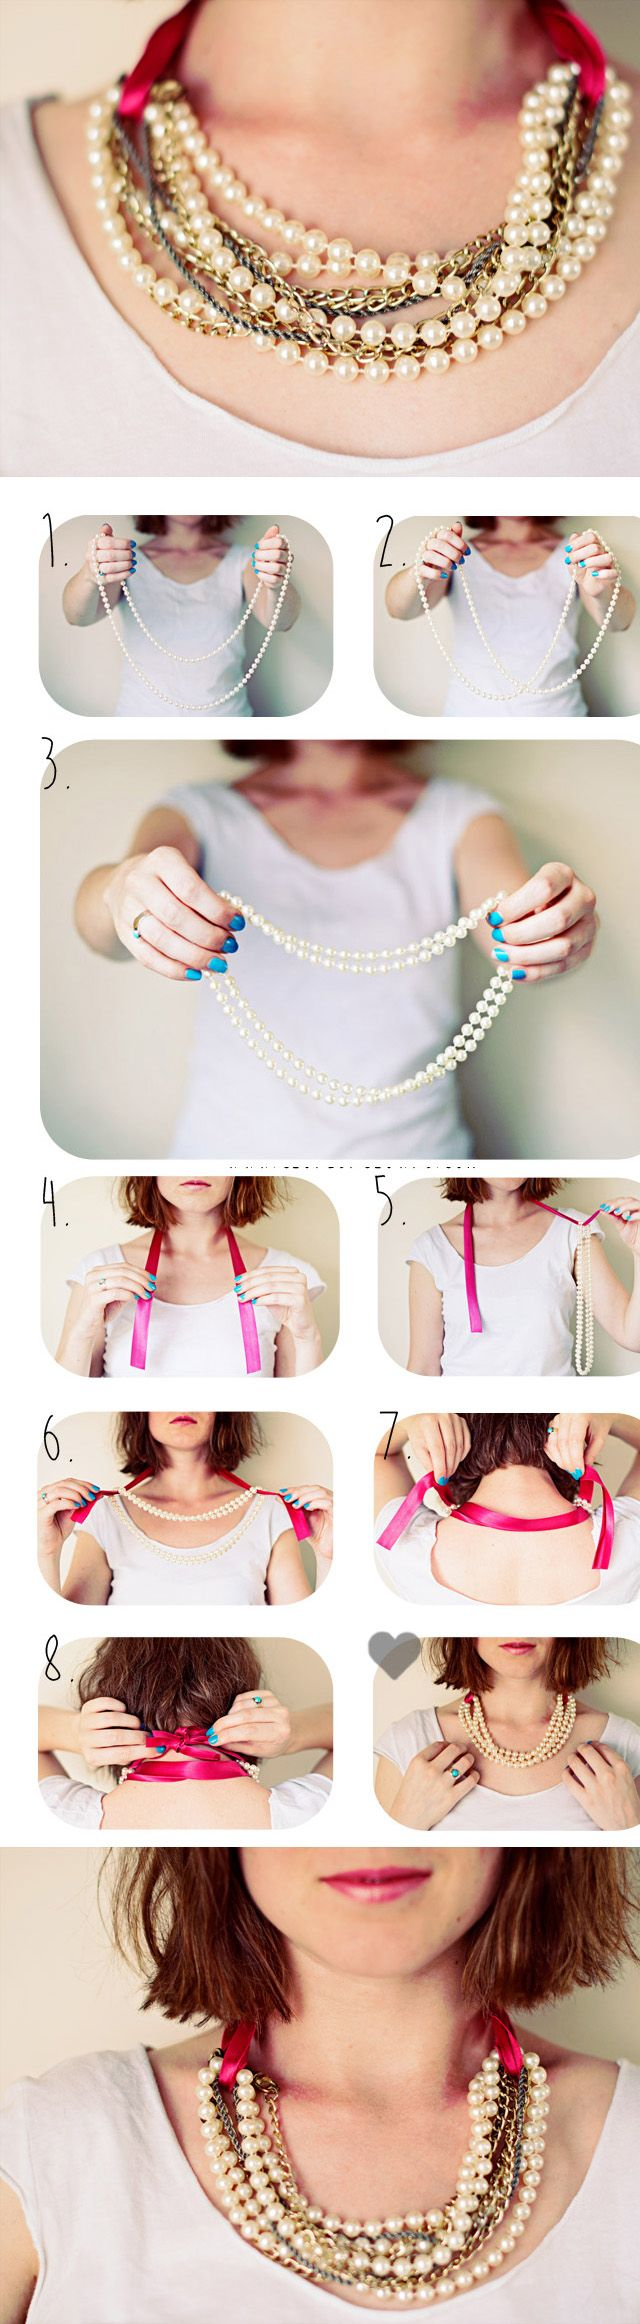 Pearl Necklace in 5 min - DIY Winter Crafts